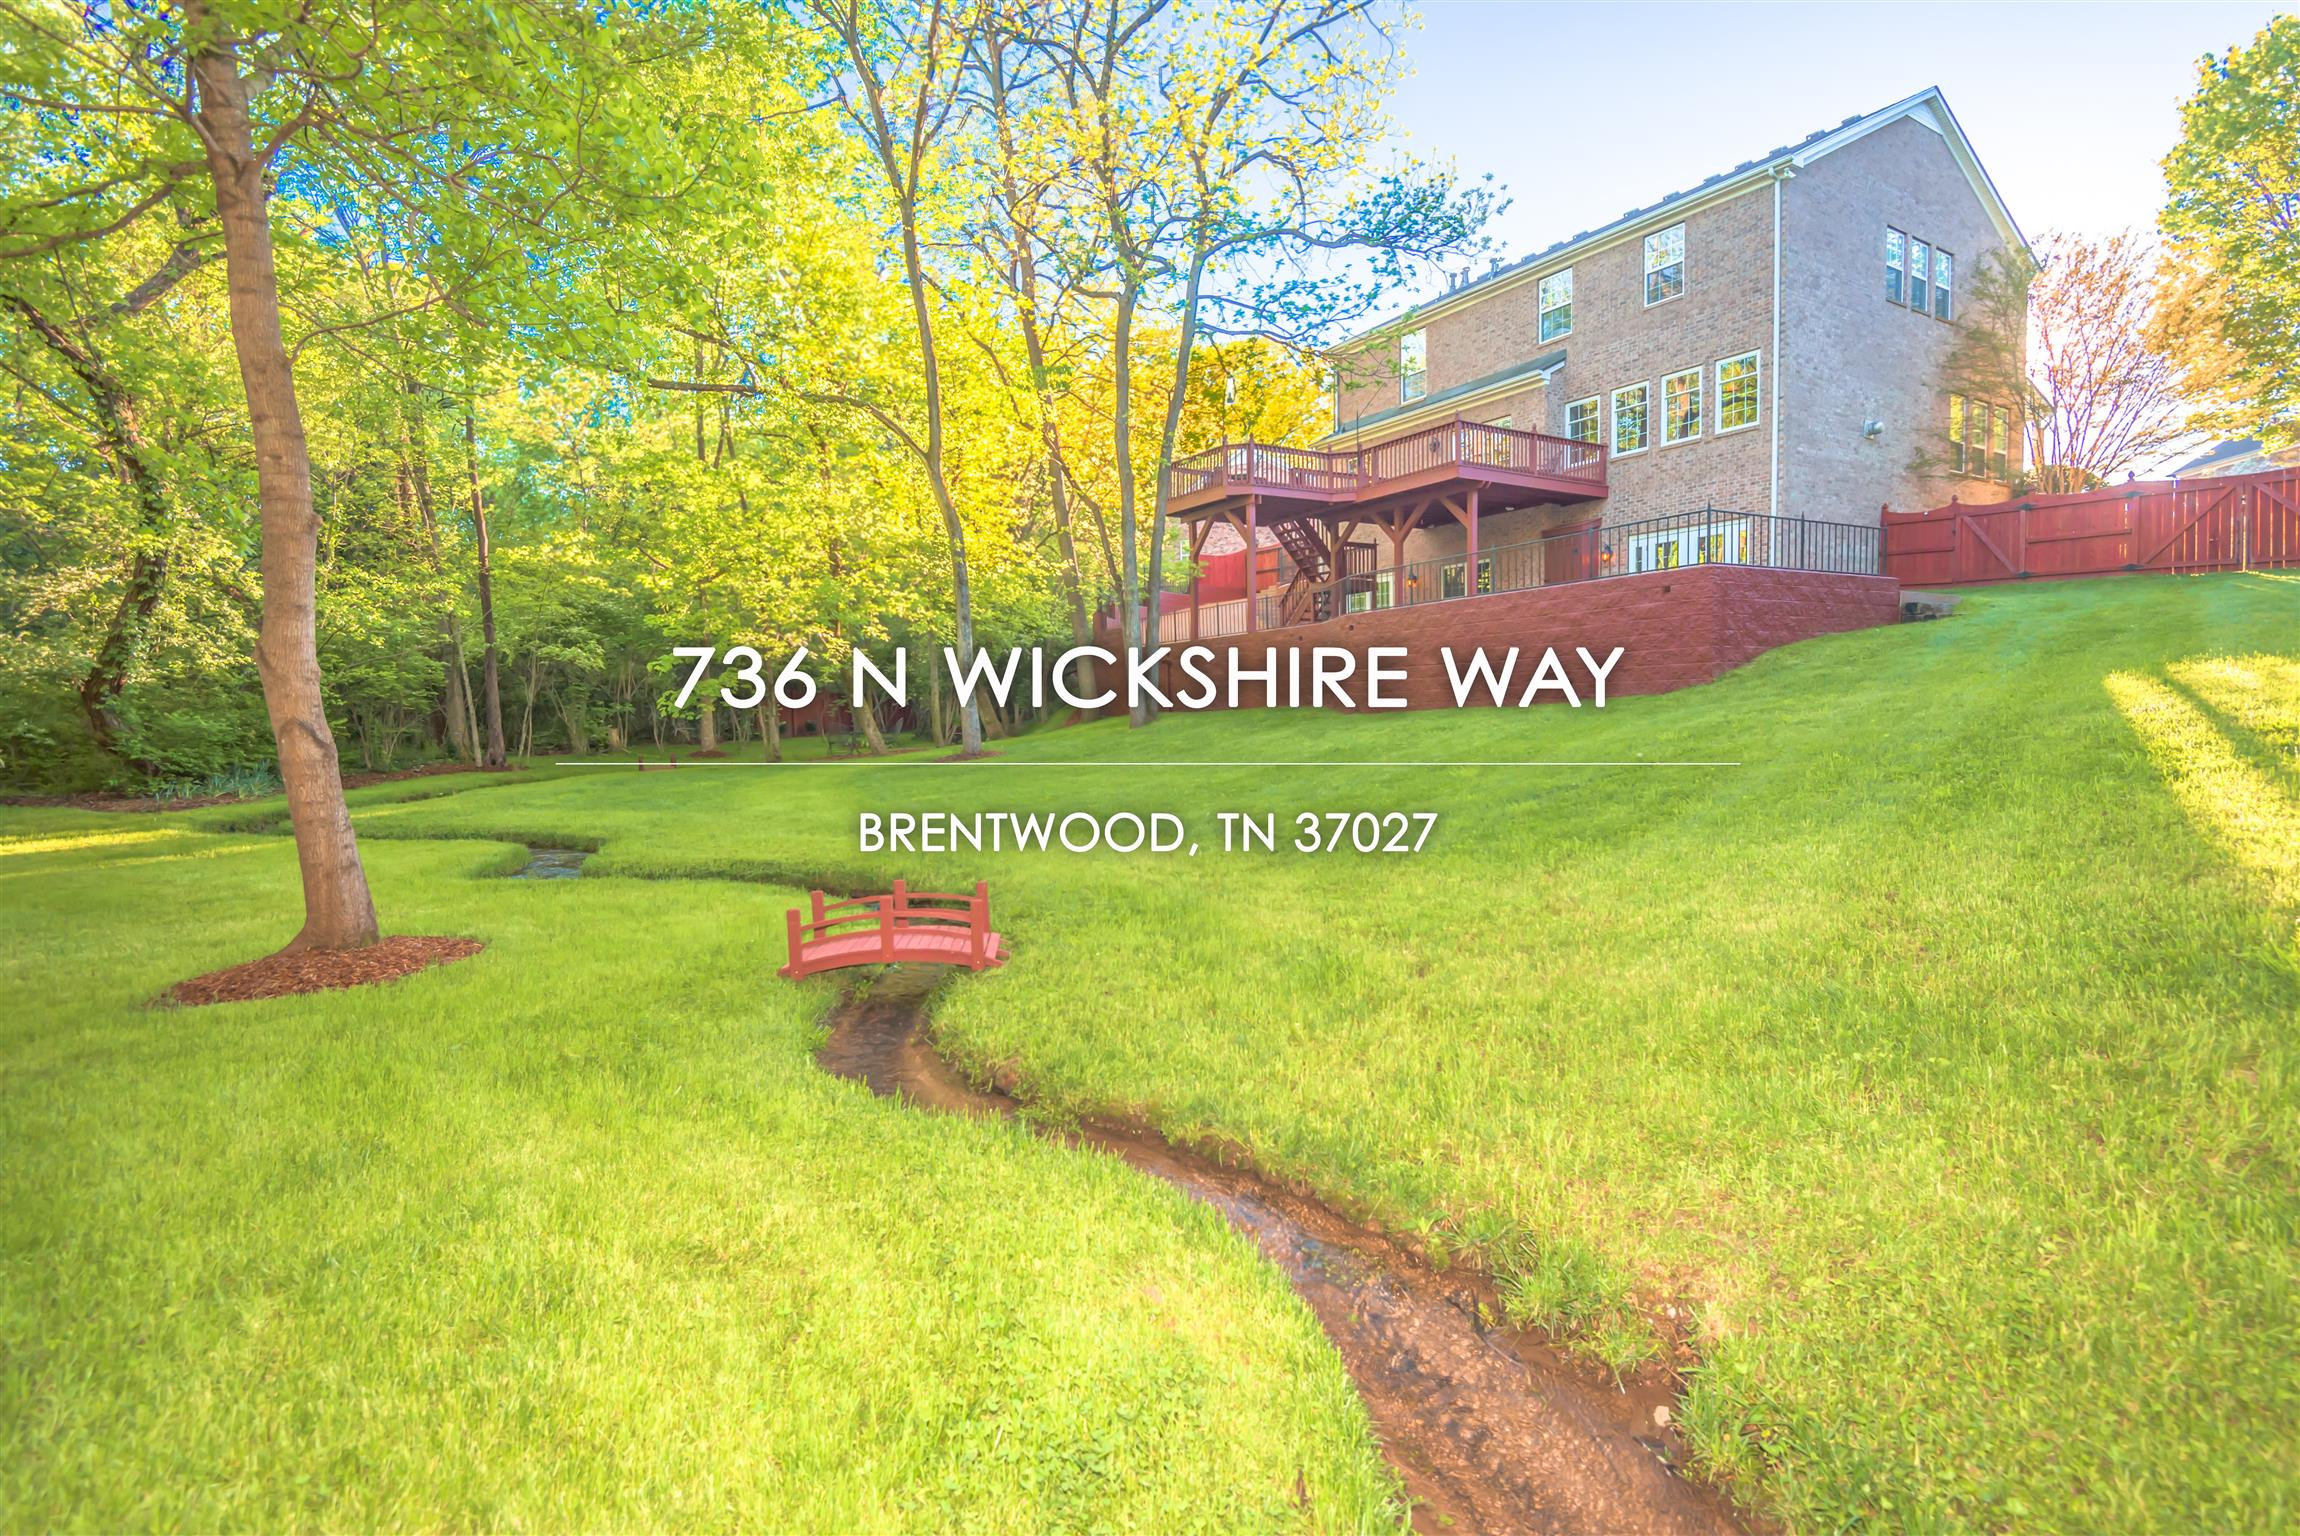 736 N Wickshire Way, Brentwood, TN 37027 - Brentwood, TN real estate listing